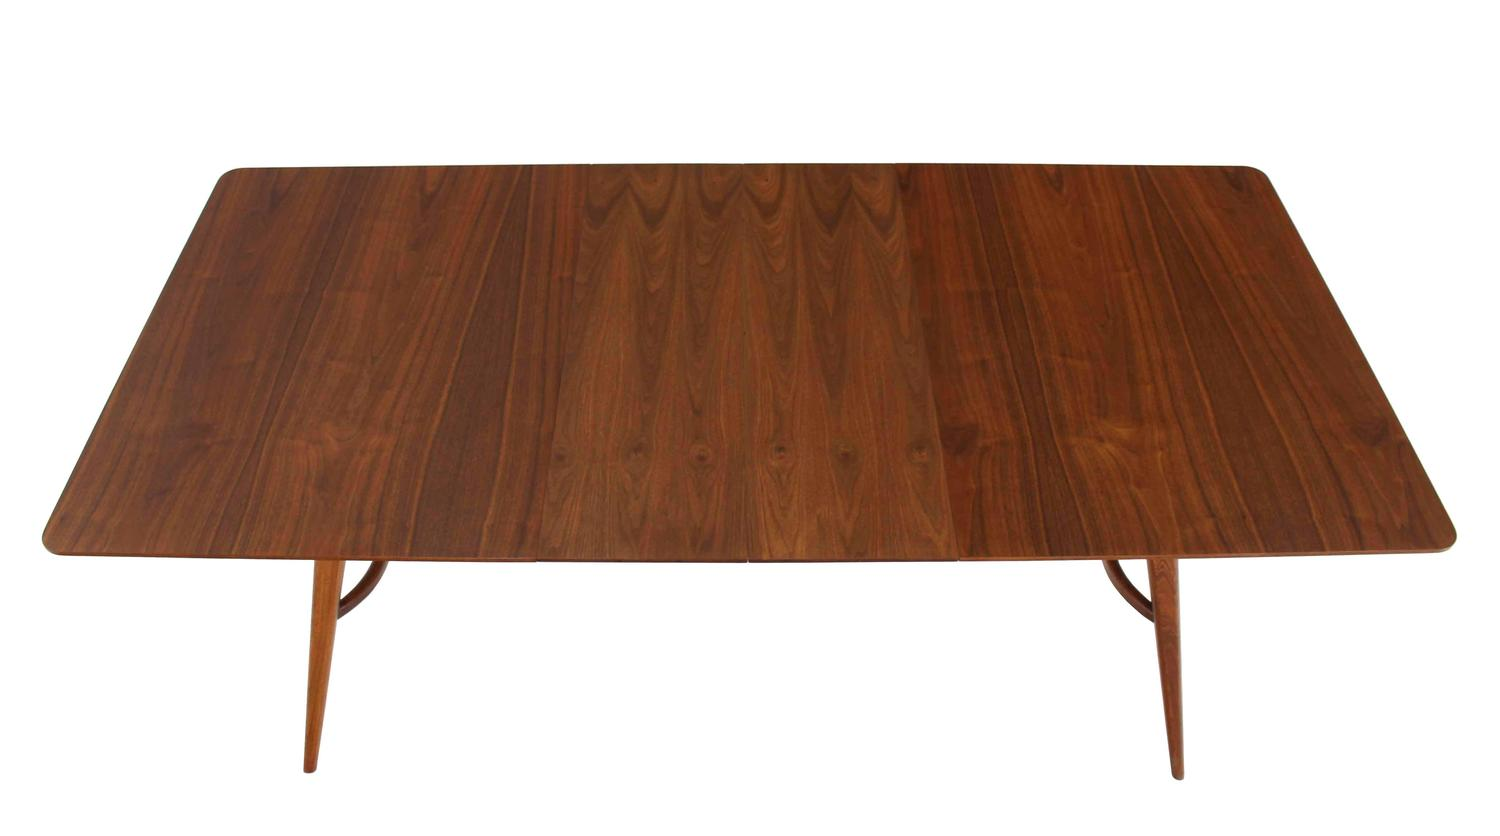 Mid century modern walnut sculptured base dining table for for Dining room table 40 x 60